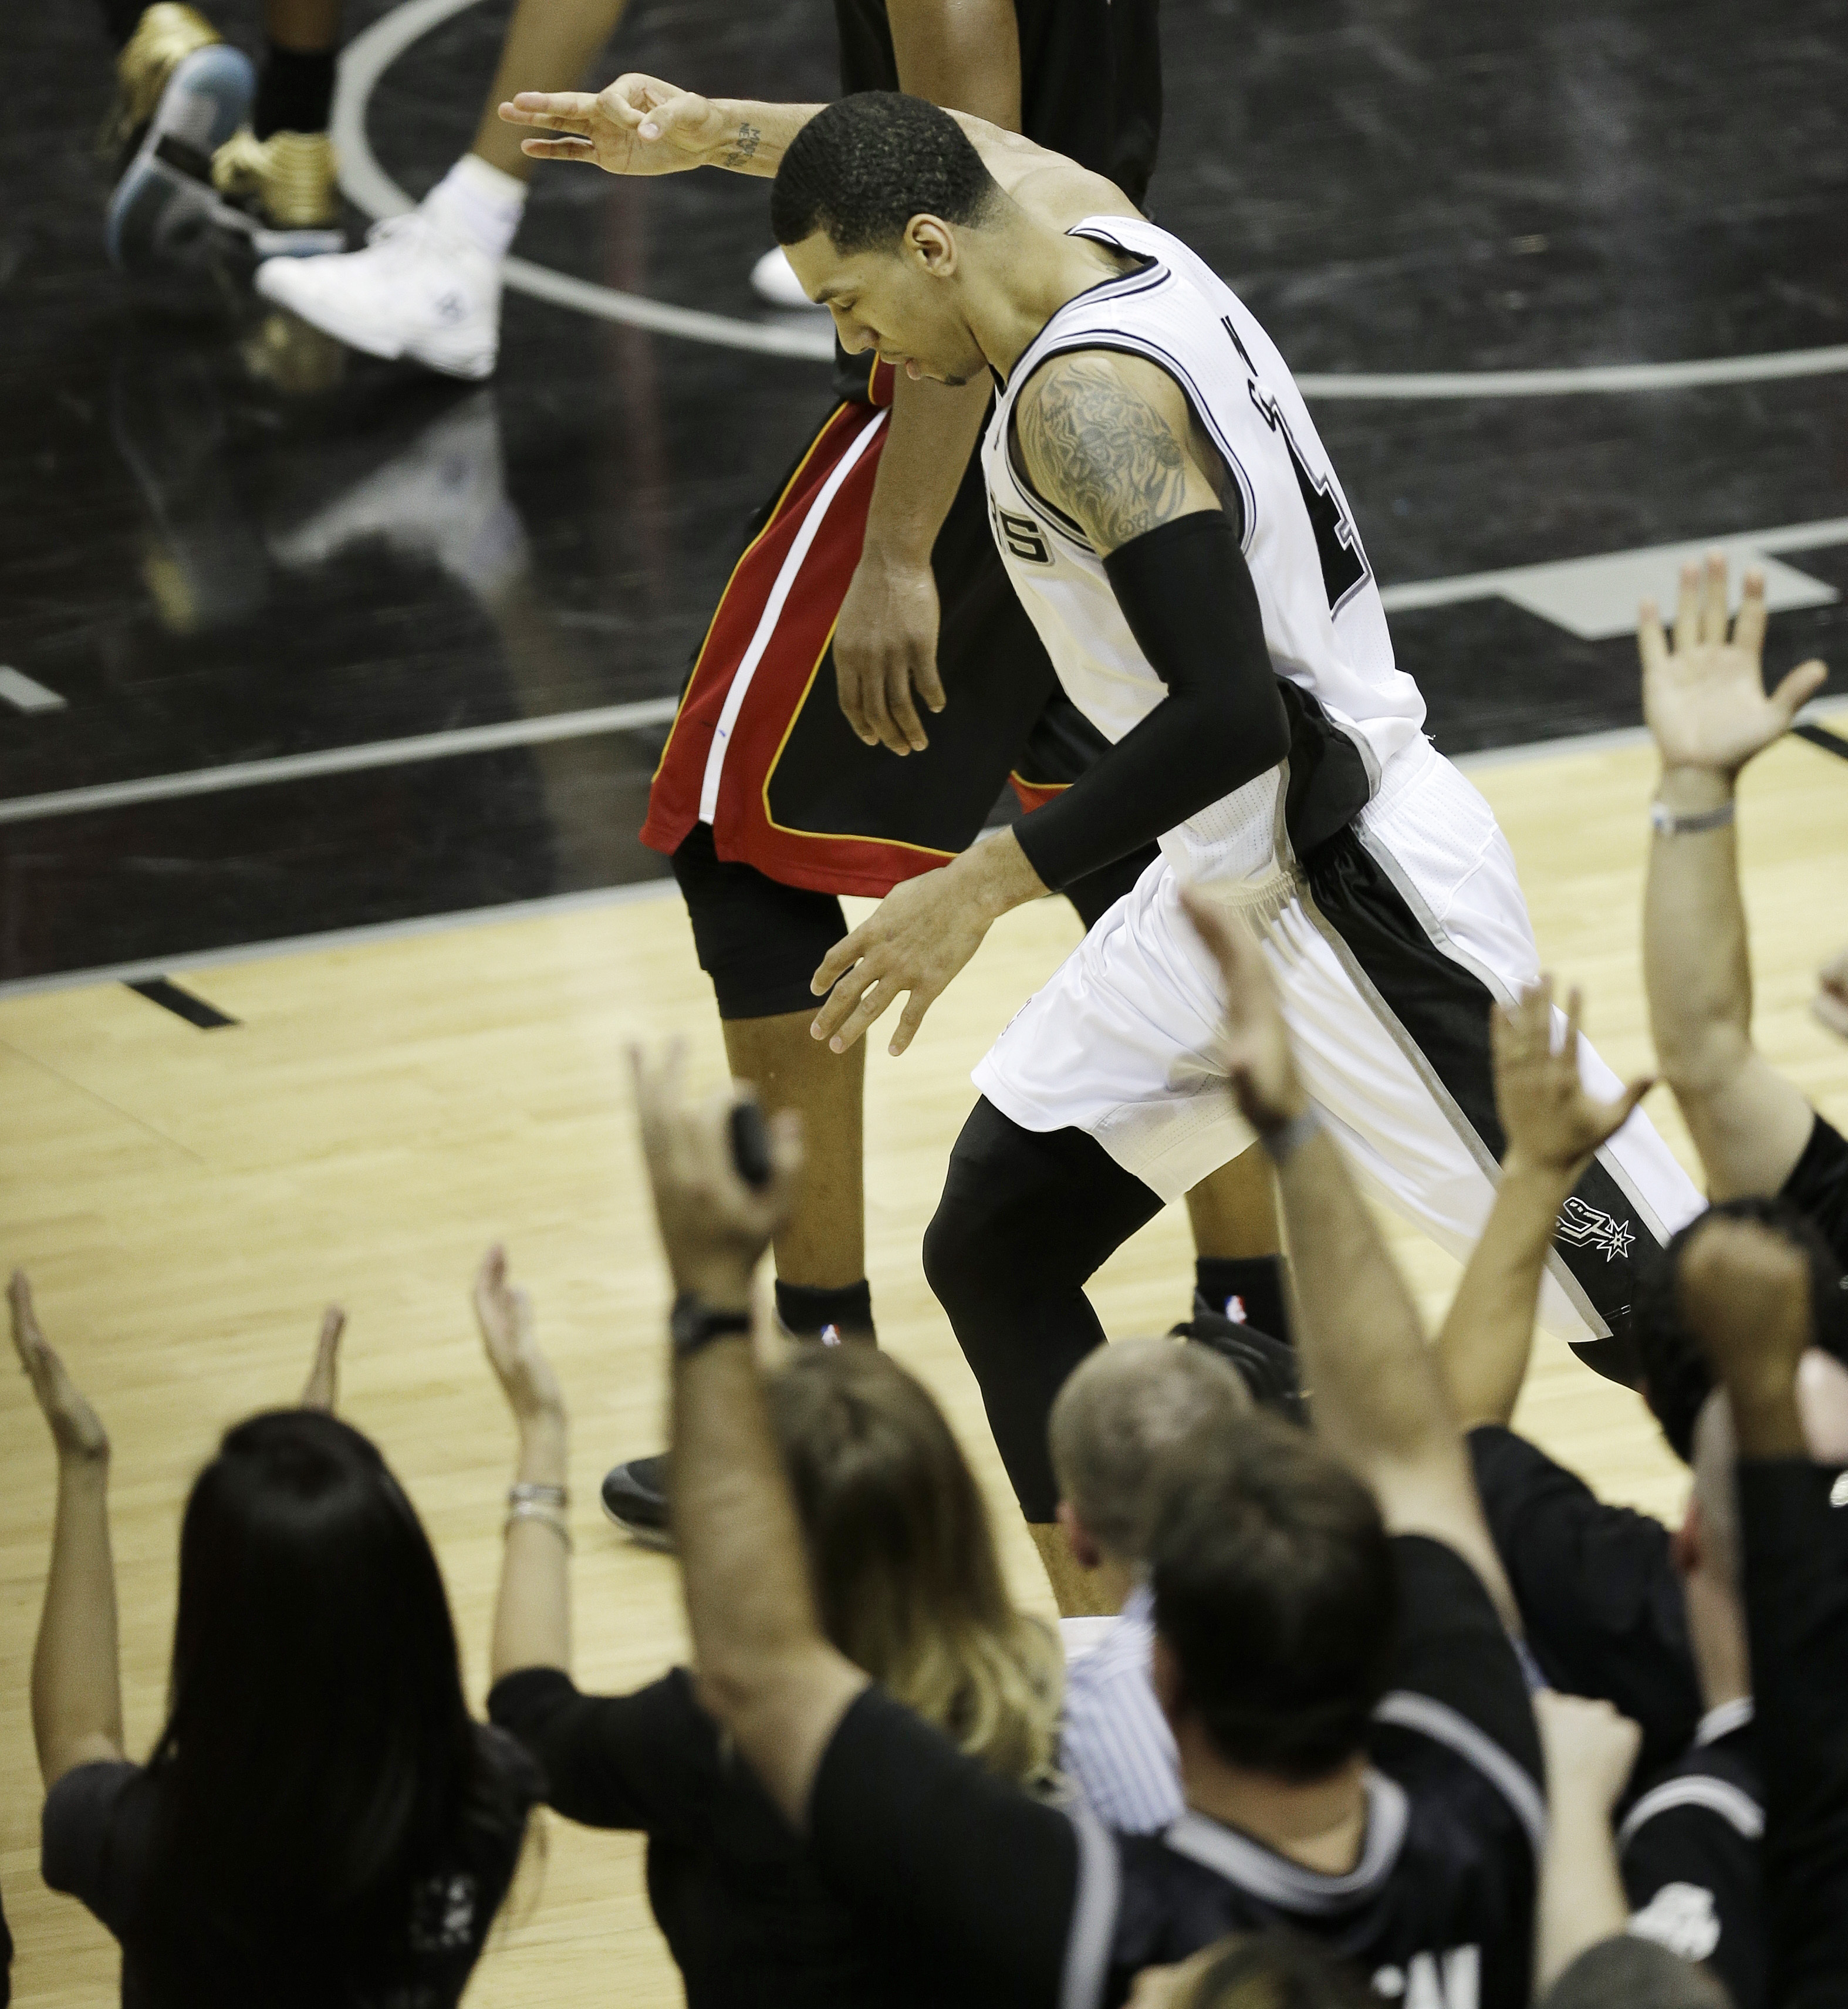 Danny Green claims NBA Finals record for 3-pointers; will he take Finals MVP next? - CBS News